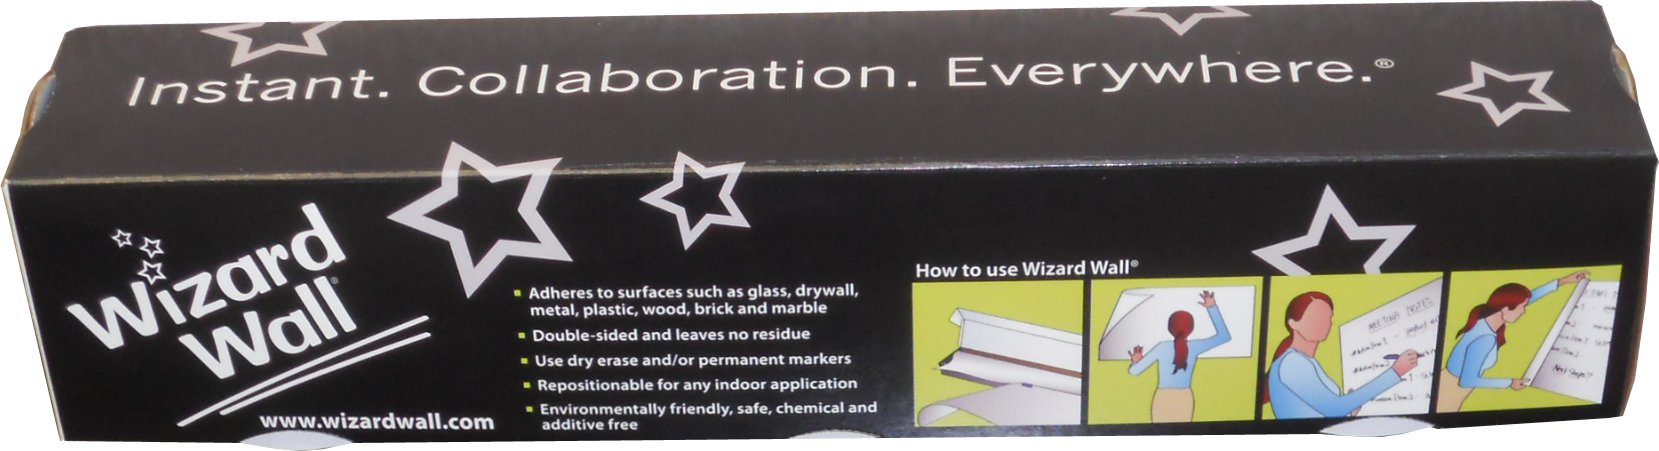 Wizard Wall Self Adhesive Dry Erase Roll System, Patented Static Adhesive Technology, Reusable and Self Cutting, 13'' x 25' Roll, White, 8-Pack